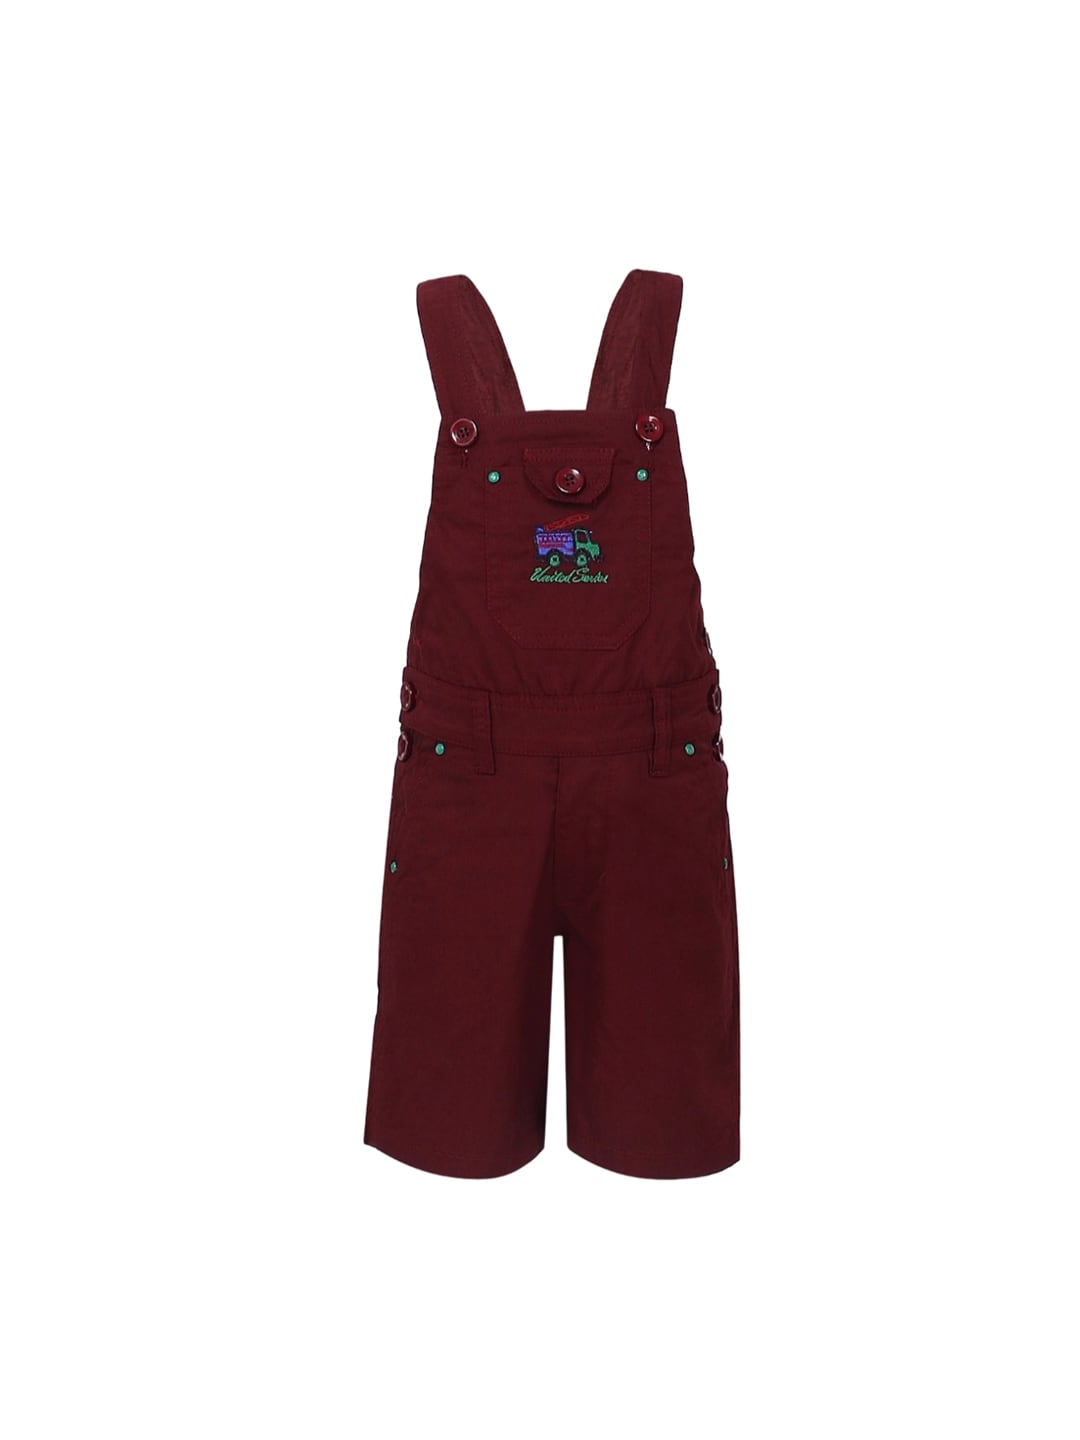 abf6df6eae8 Kids Dungarees - Buy Dungarees for Kids Online in India